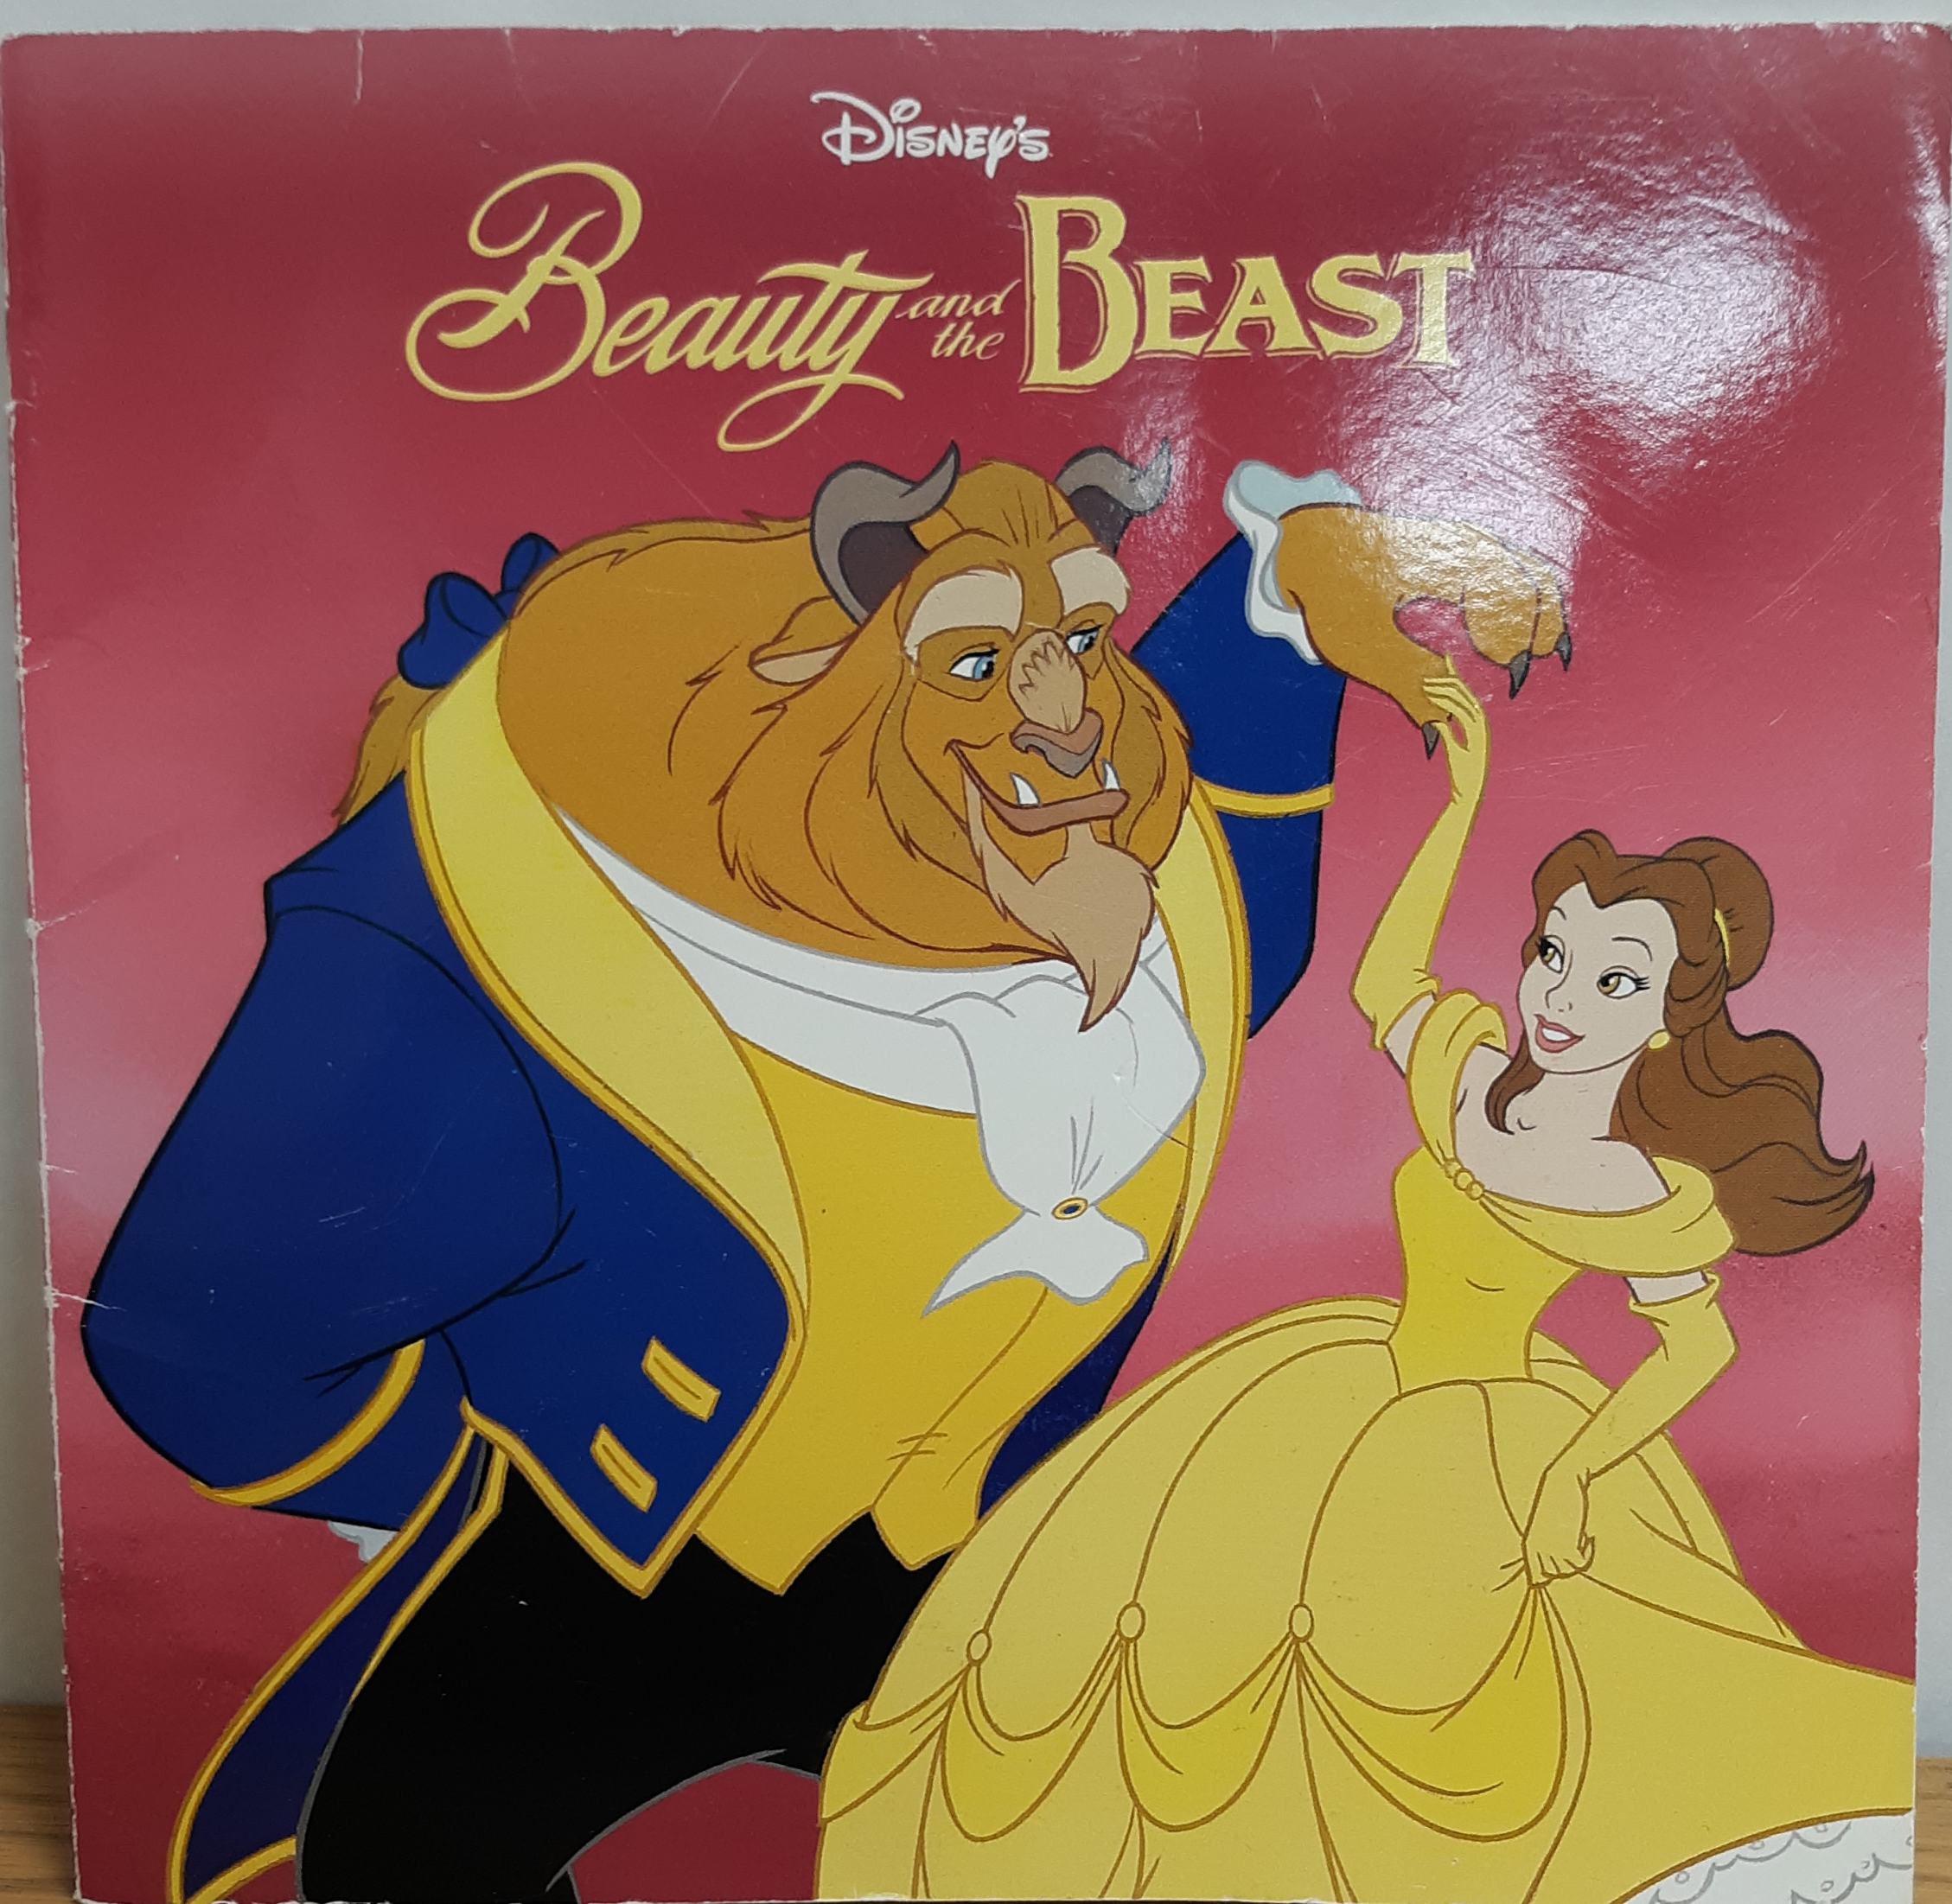 https://0201.nccdn.net/1_2/000/000/119/ab8/beauty-and-the-beast.png